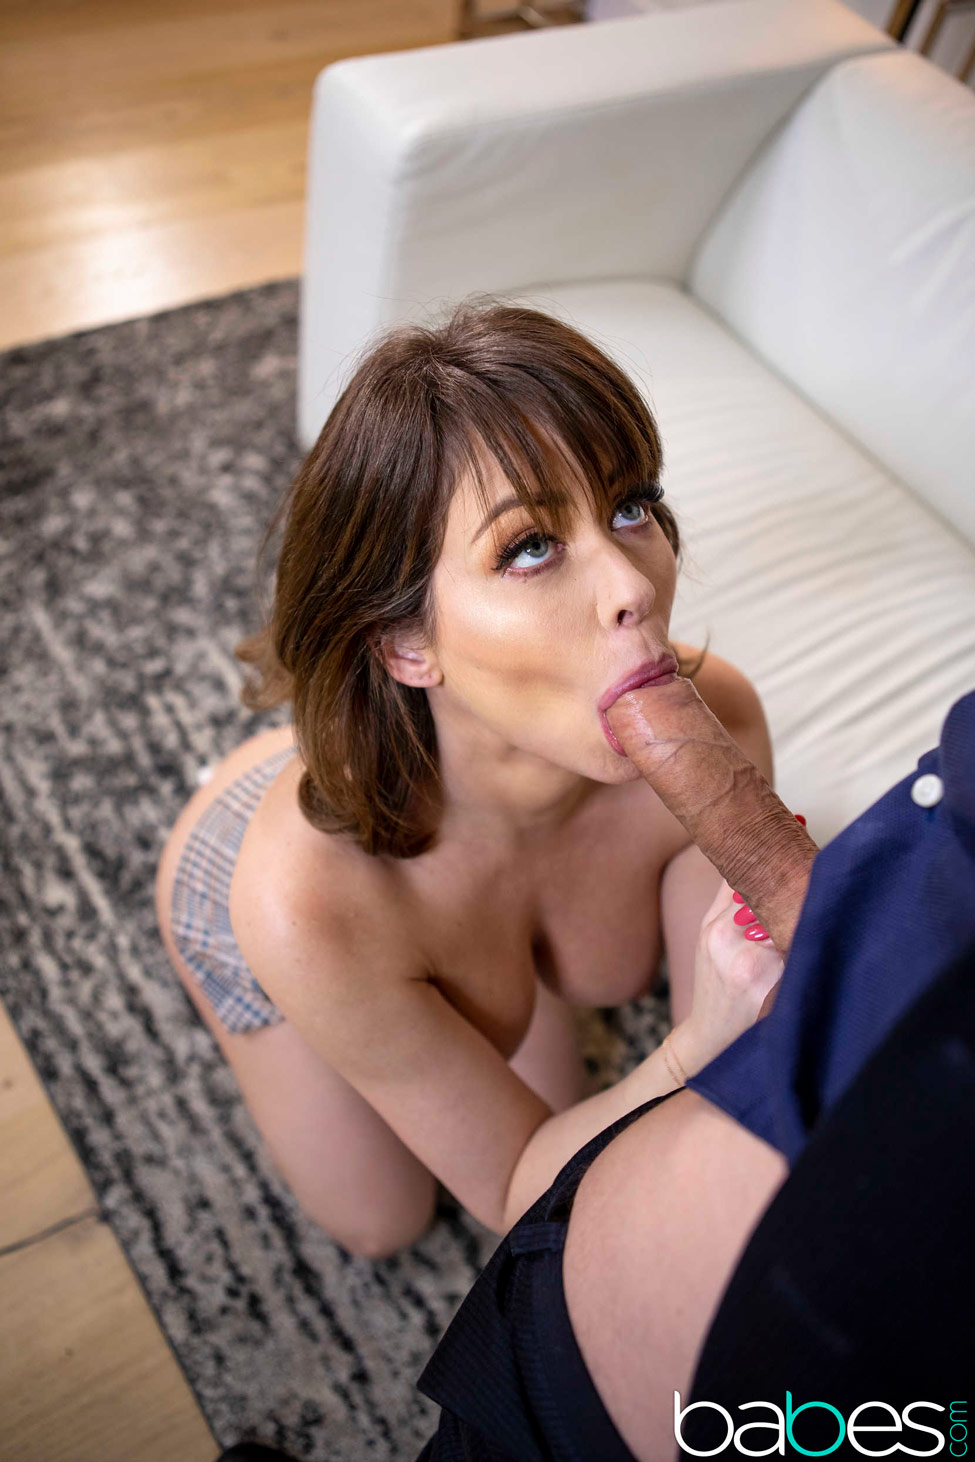 Fucked emily addison Videos Tagged